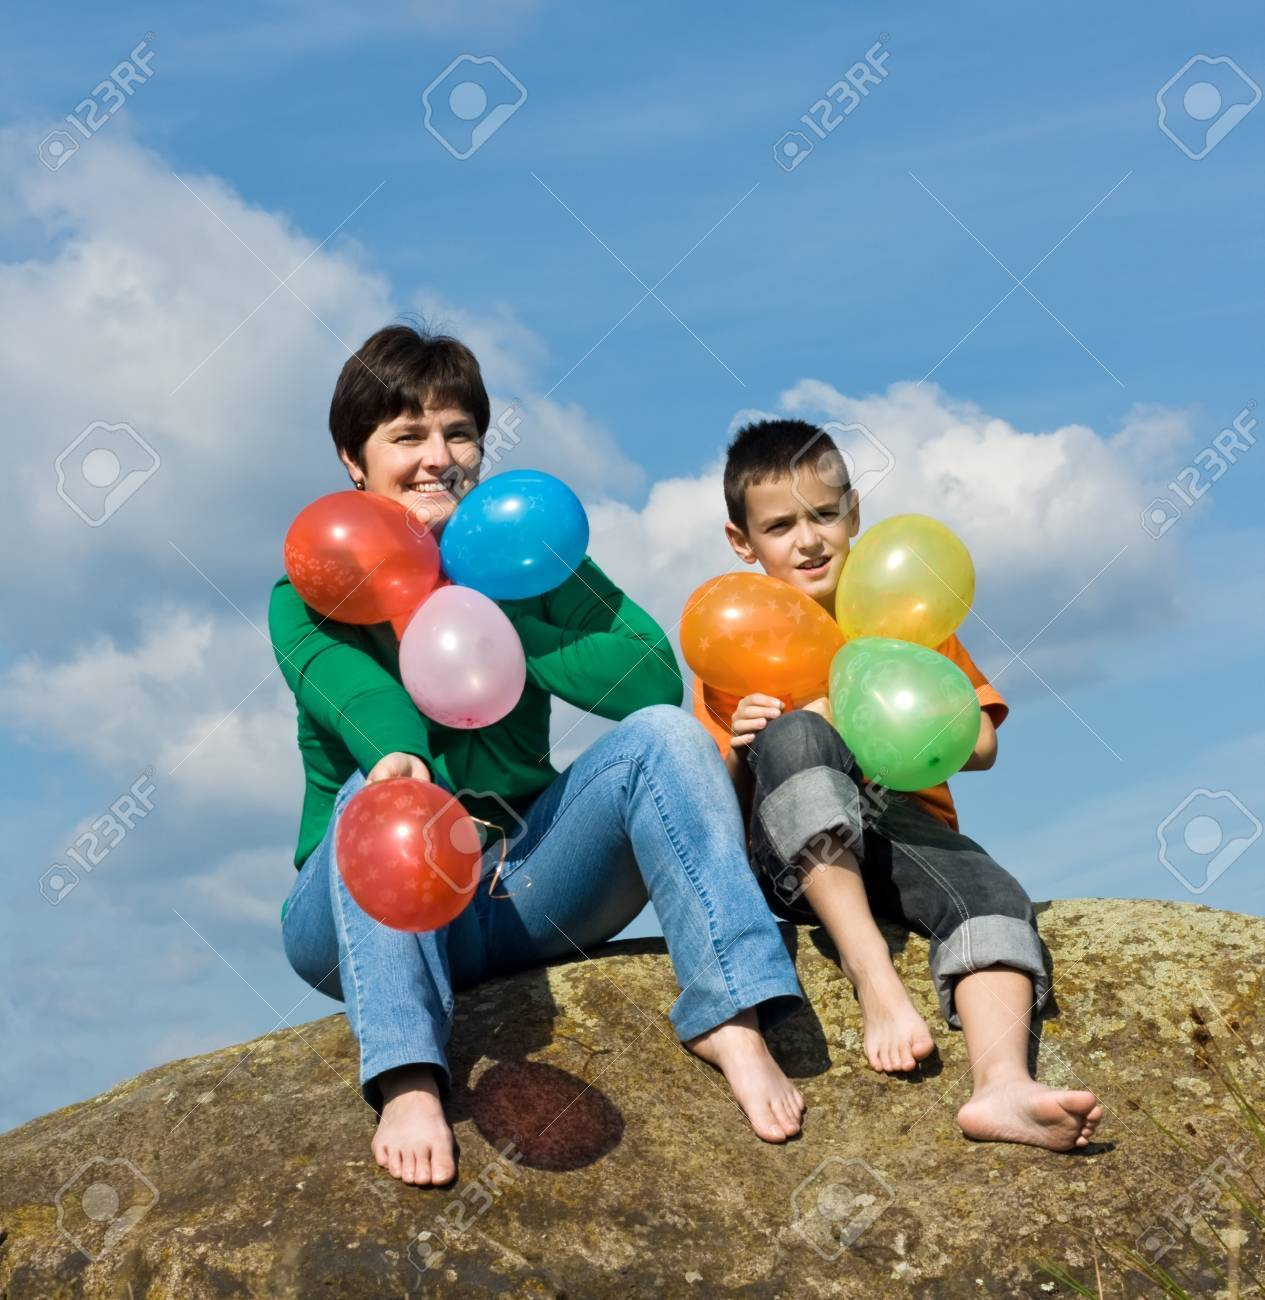 Beautiful woman and her son sitting on the stone with balloons in their hands Stock Photo - 17505009